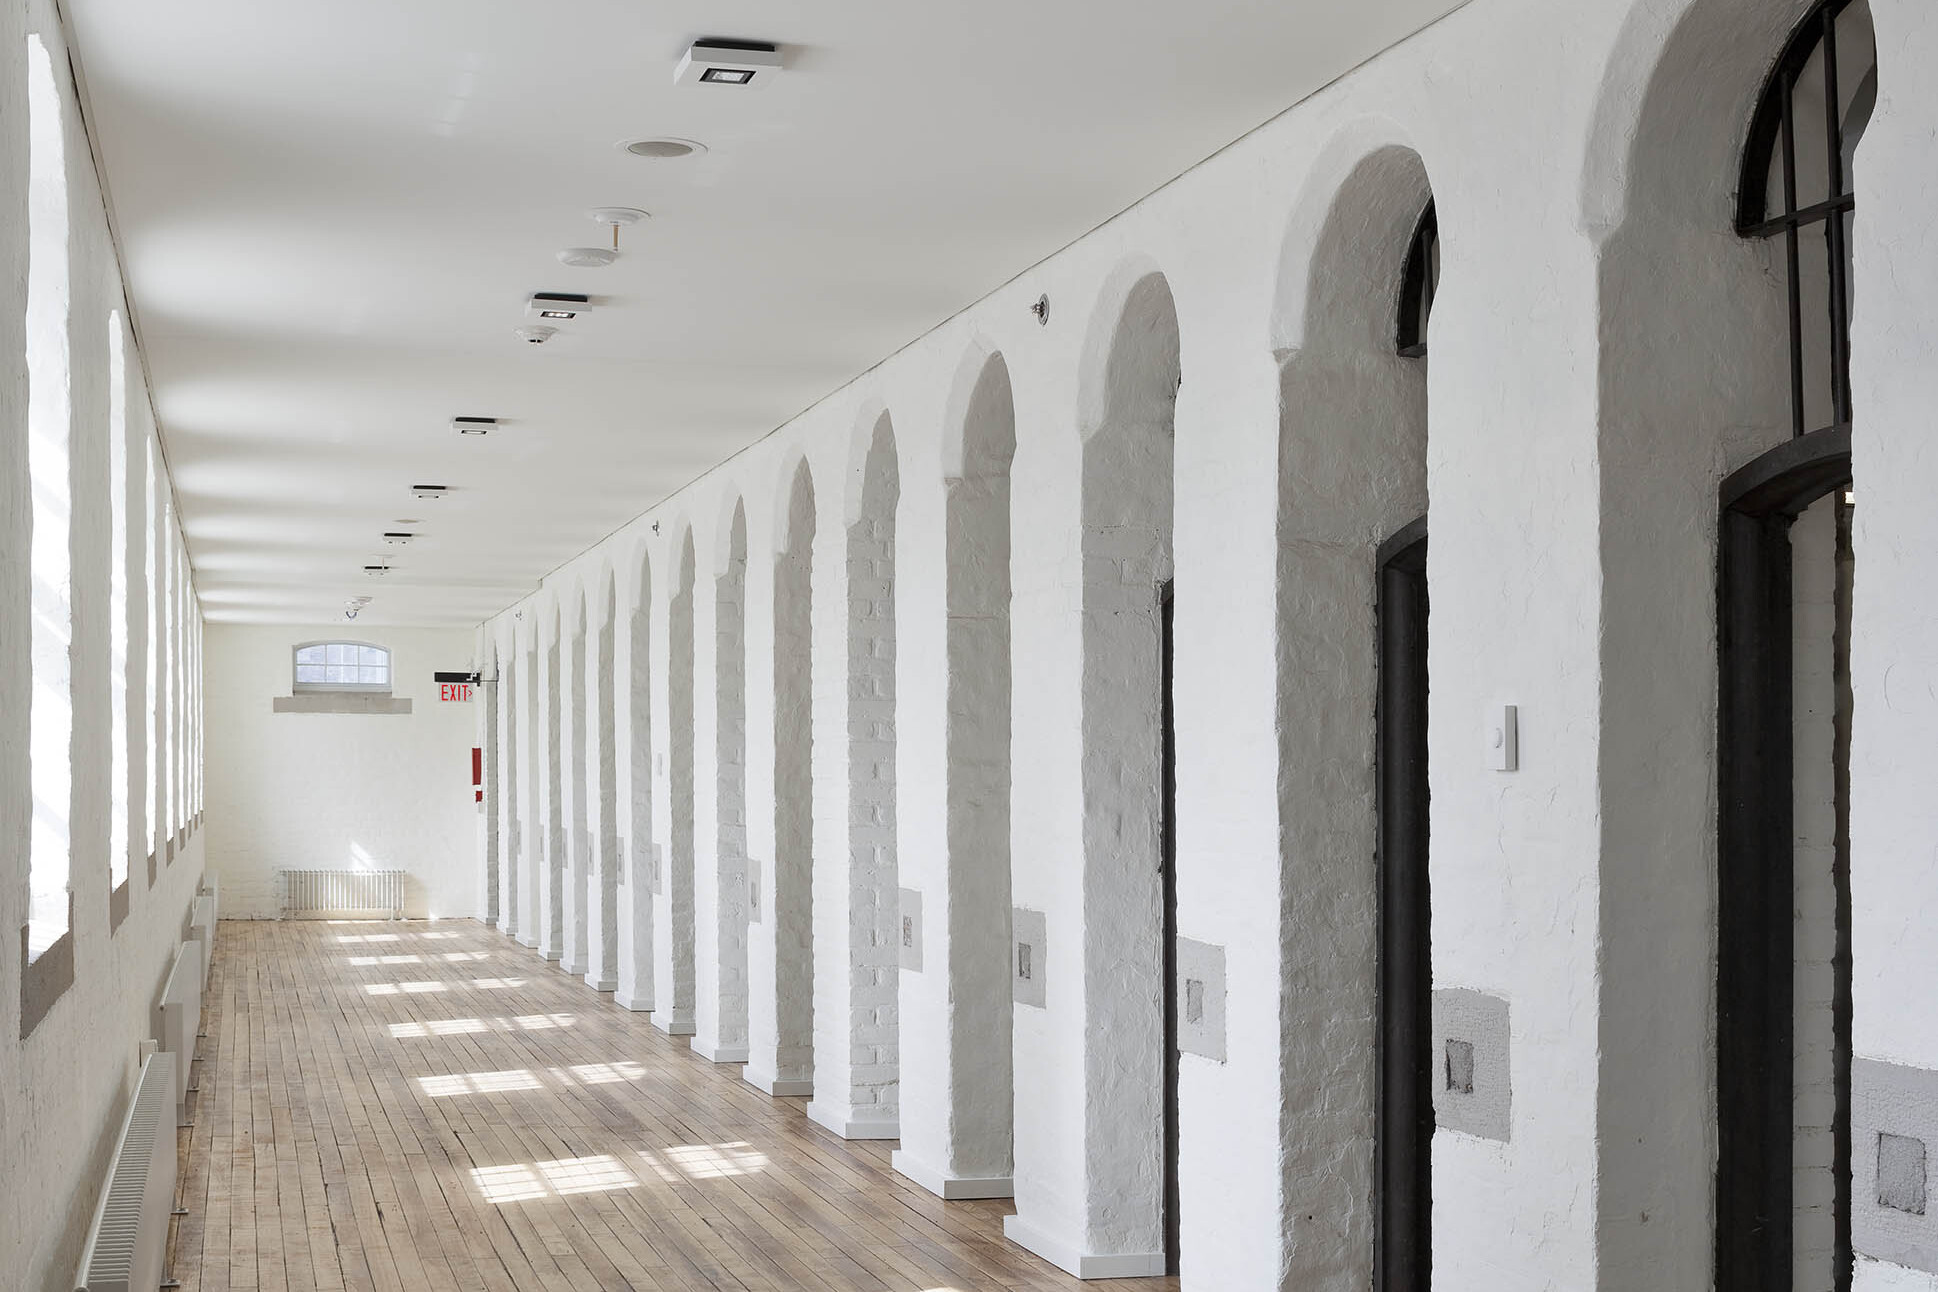 Original cells with archways on right in white corridor with wood floors and windows on left